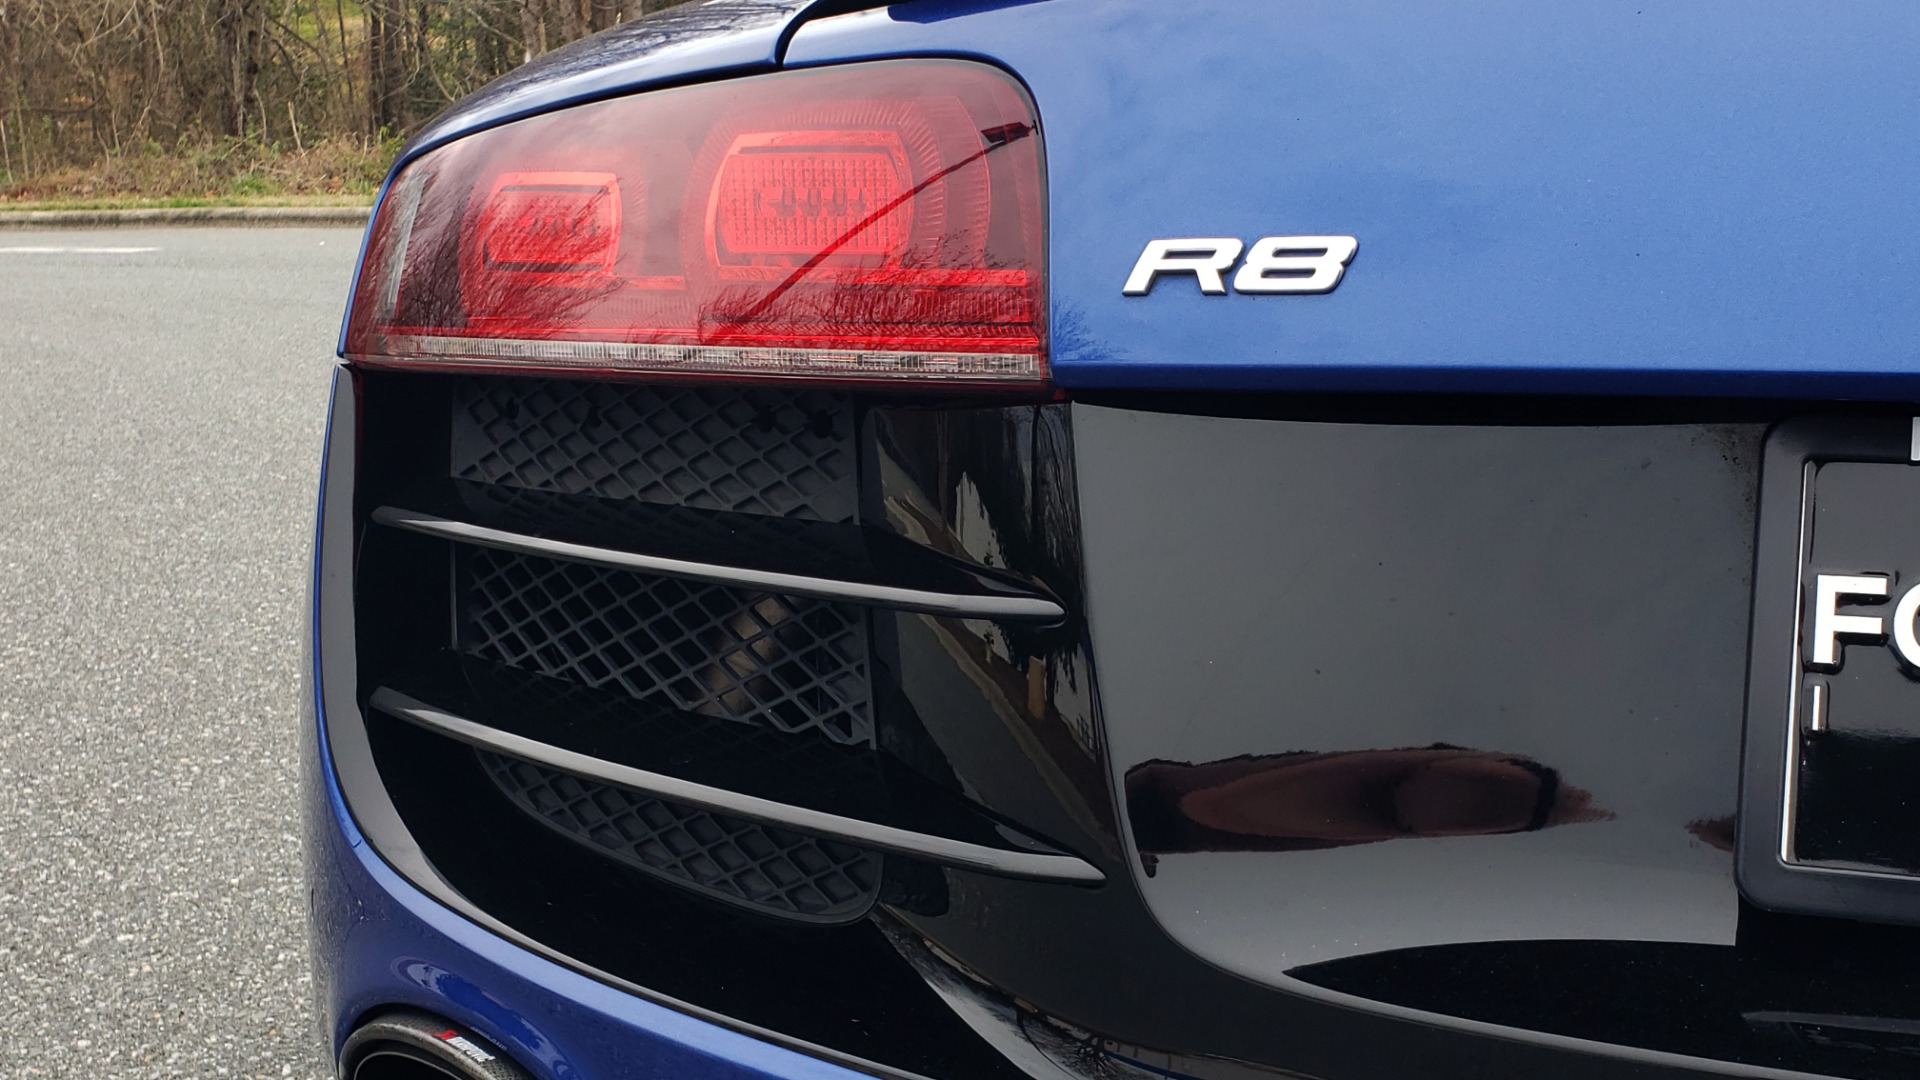 Used 2010 Audi R8 5.2L V10 / AWD / NAV / B&O SND / HTD STS / CUSTOM EXH & WHEELS for sale $78,000 at Formula Imports in Charlotte NC 28227 57